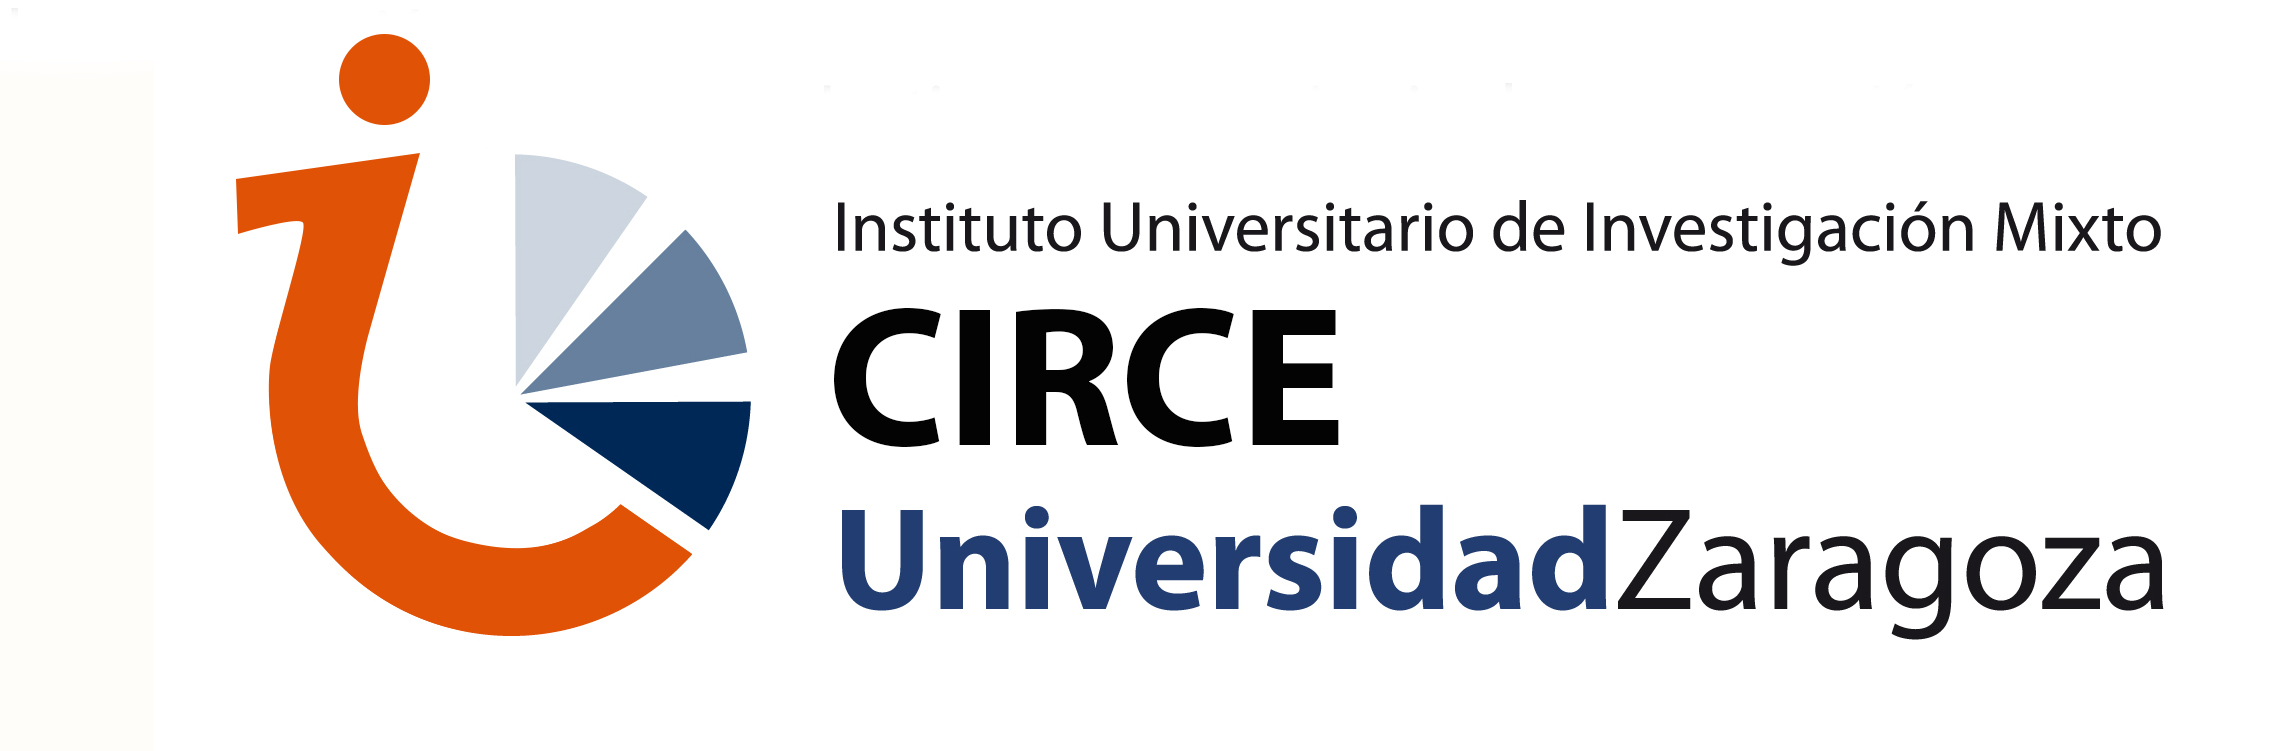 Logo instituto Circe